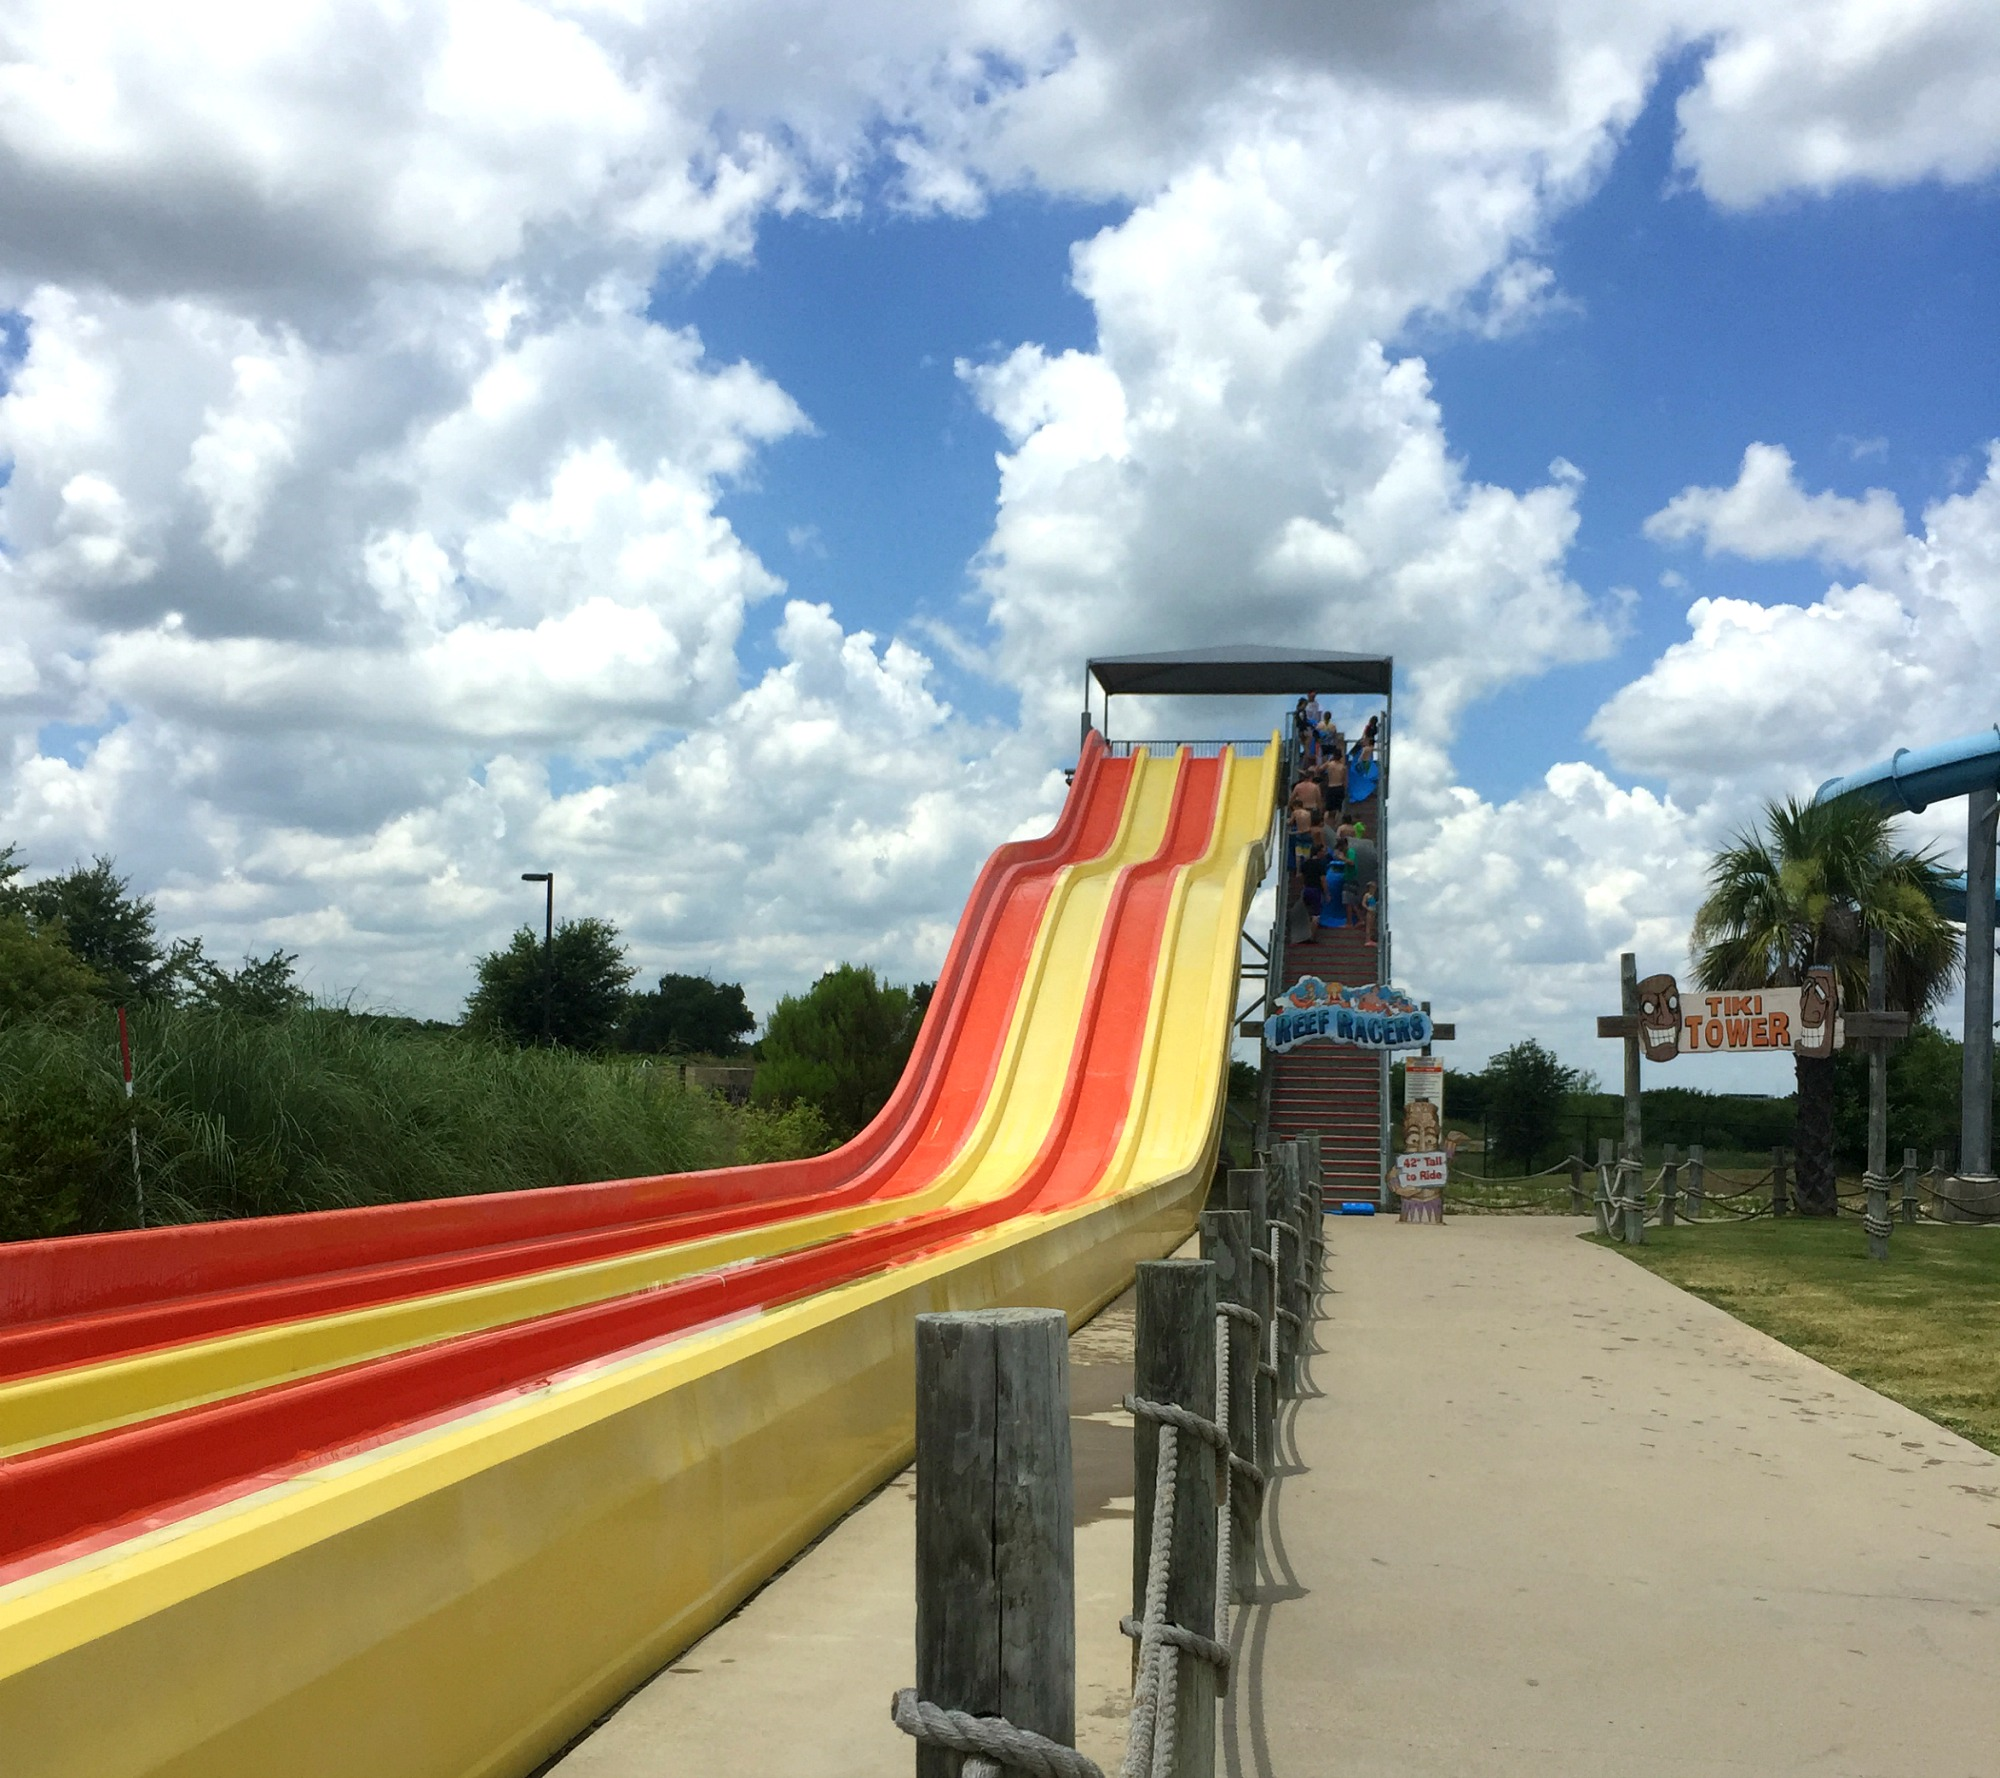 waterslide at Hawaiian Falls